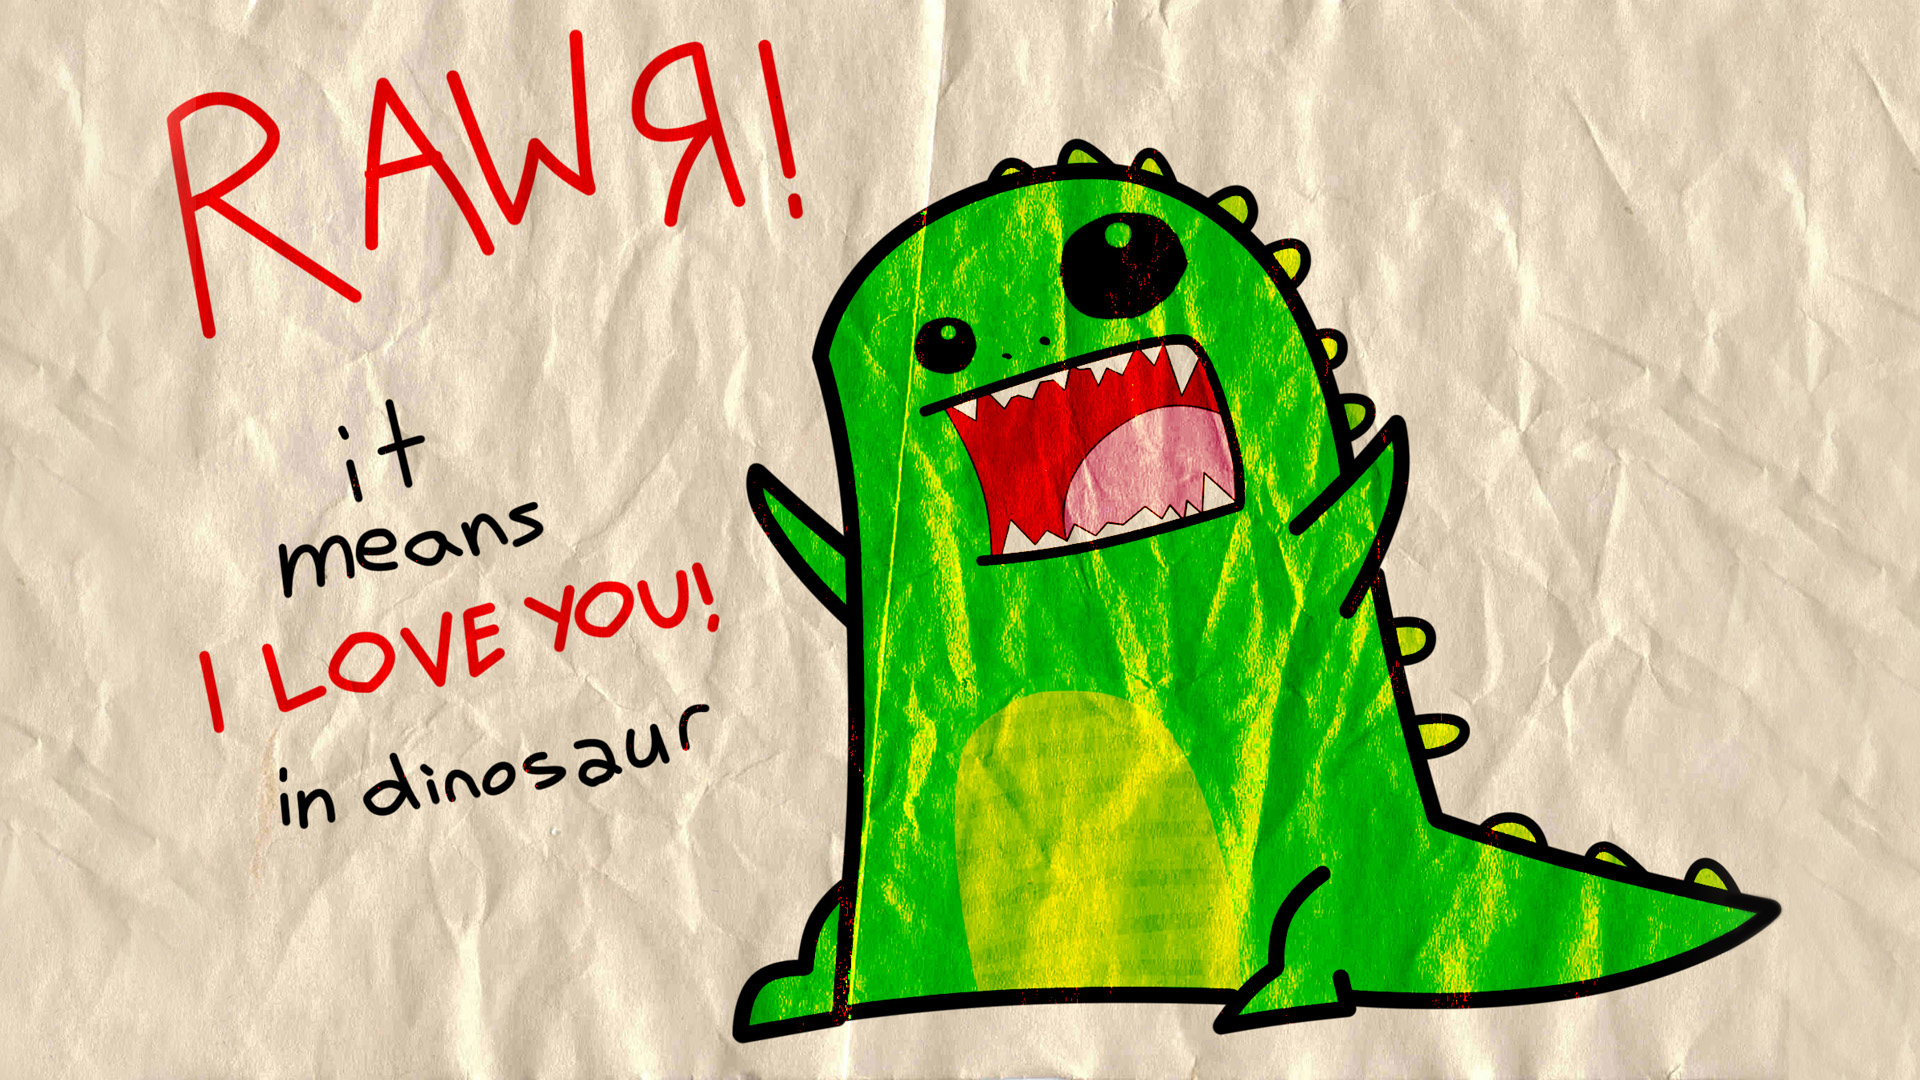 Dinosaur Wallpaper 2 Rawr Means I Love You In Dinosaur 1920x1080